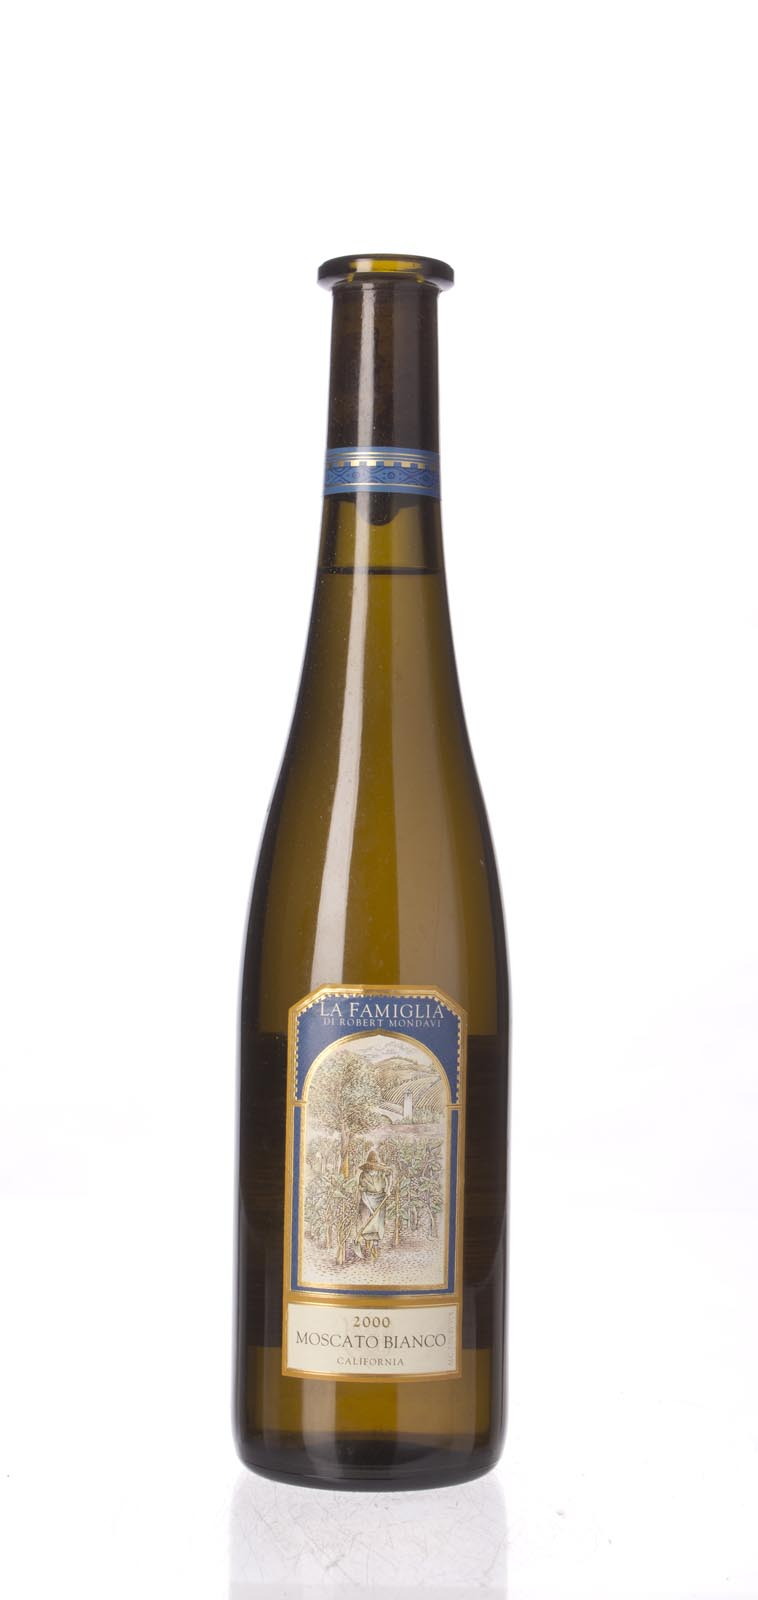 La Famiglia di Robert Mondavi Moscato Bianco 2000, 500mL () from The BPW - Merchants of rare and fine wines.